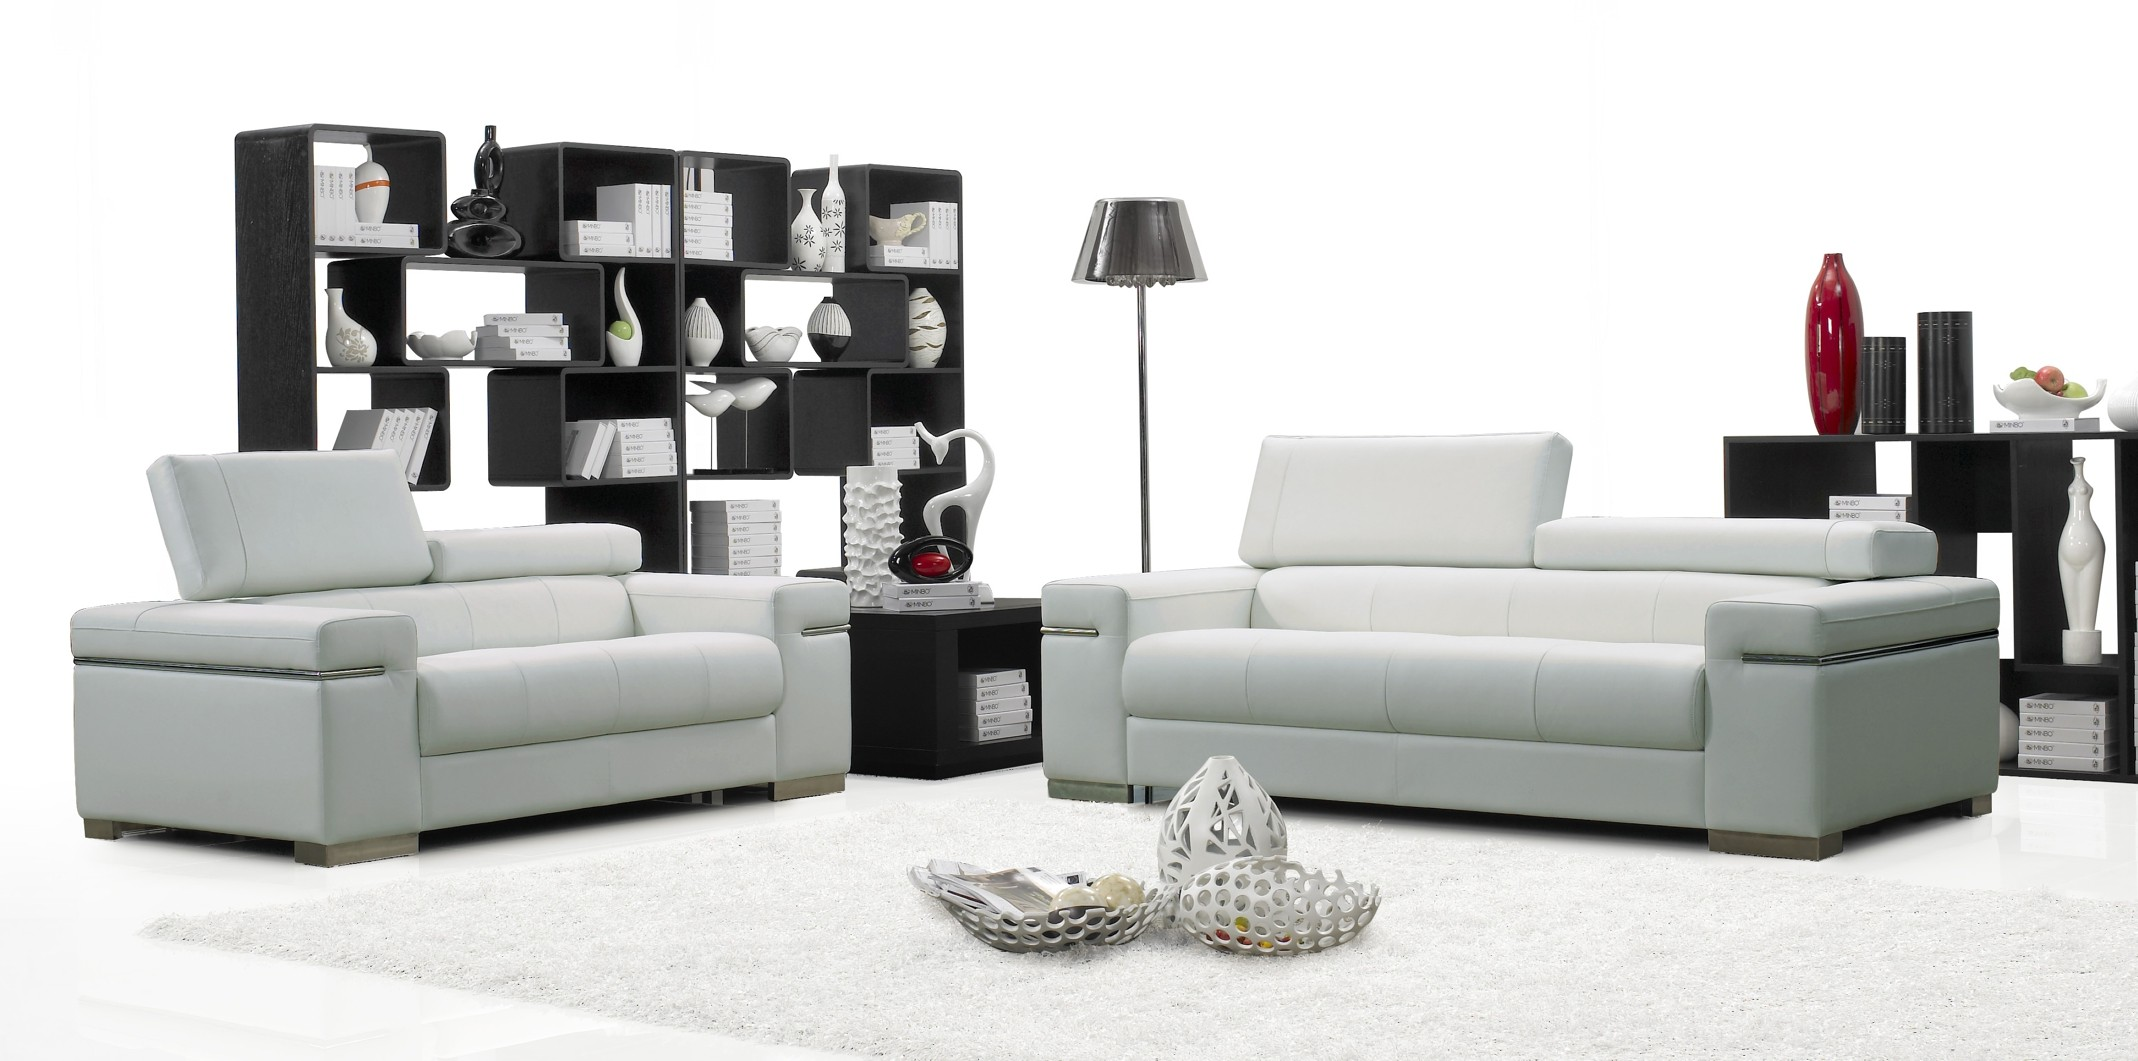 True modern furniture online homesfeed for Contemporary furnishings